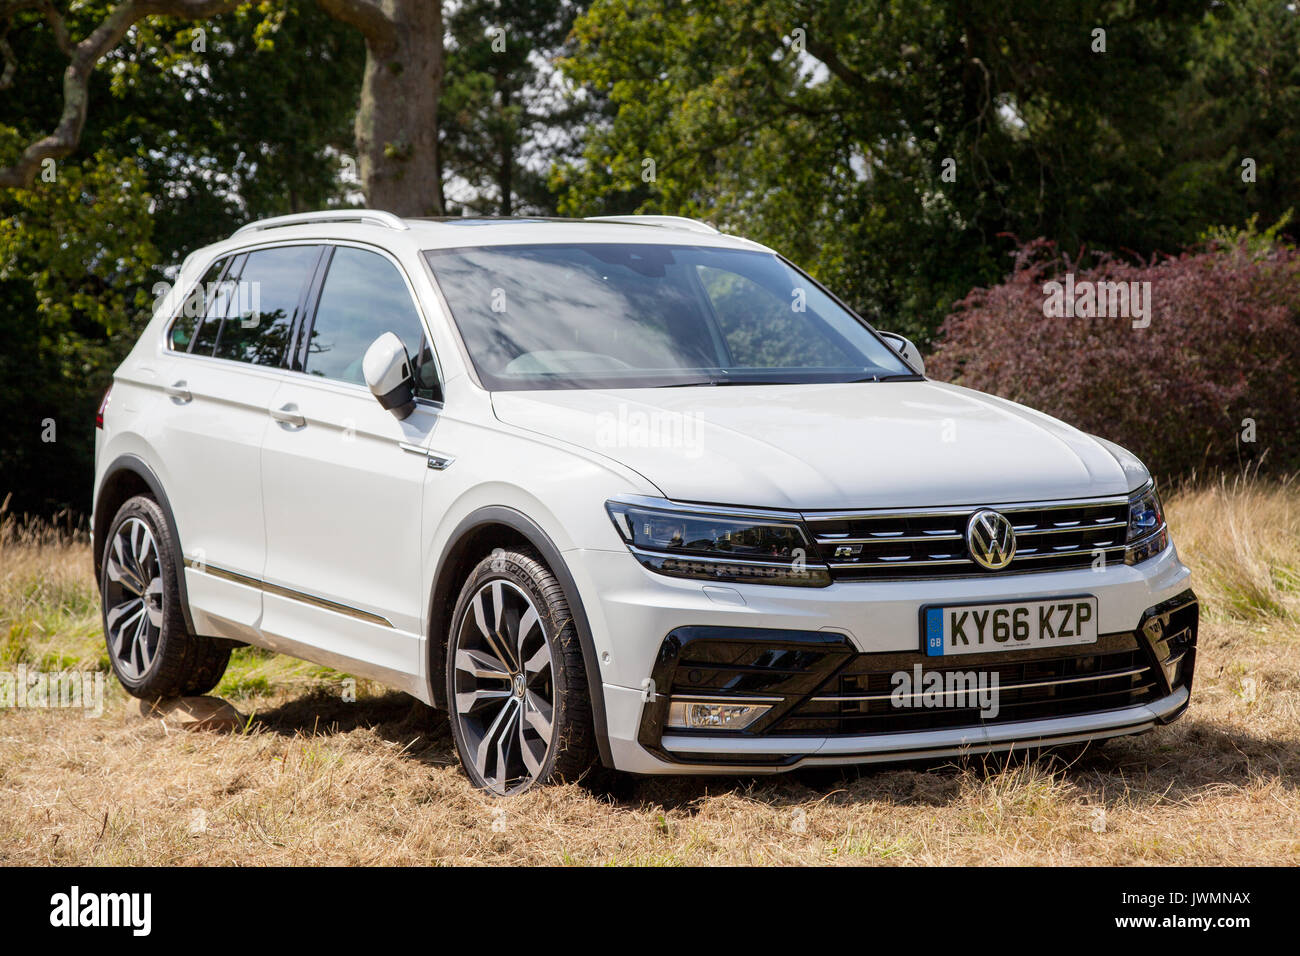 vw tiguan r line cuv suv stockfoto bild 153505154 alamy. Black Bedroom Furniture Sets. Home Design Ideas